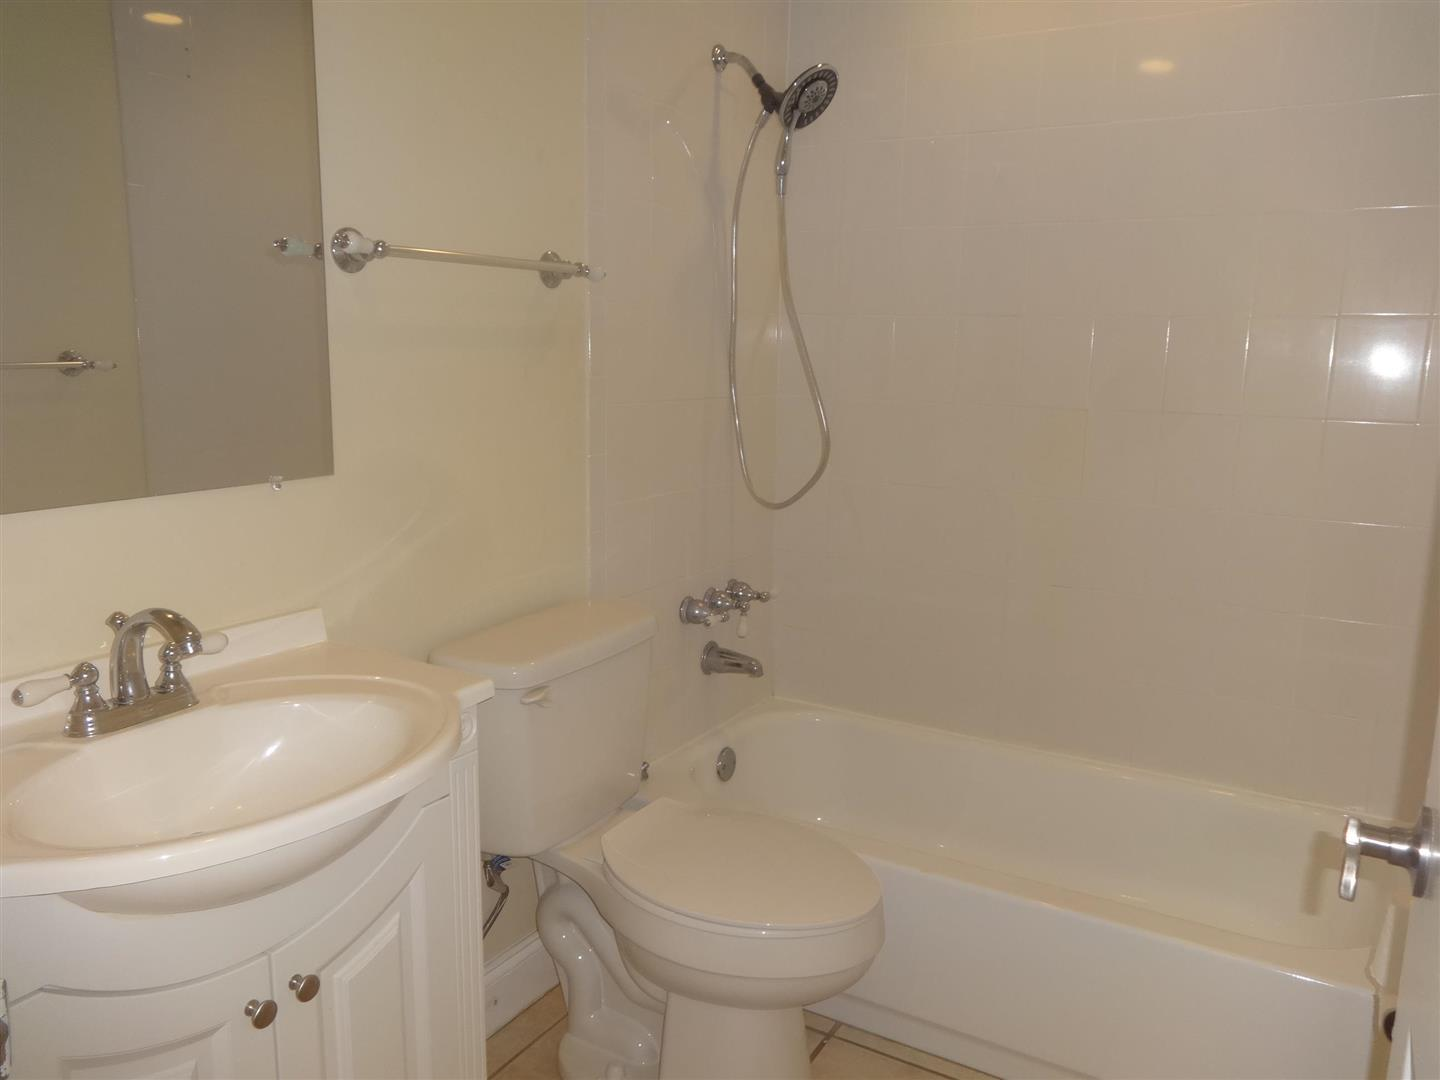 1295DevonRoadGuestBathroom.JPG